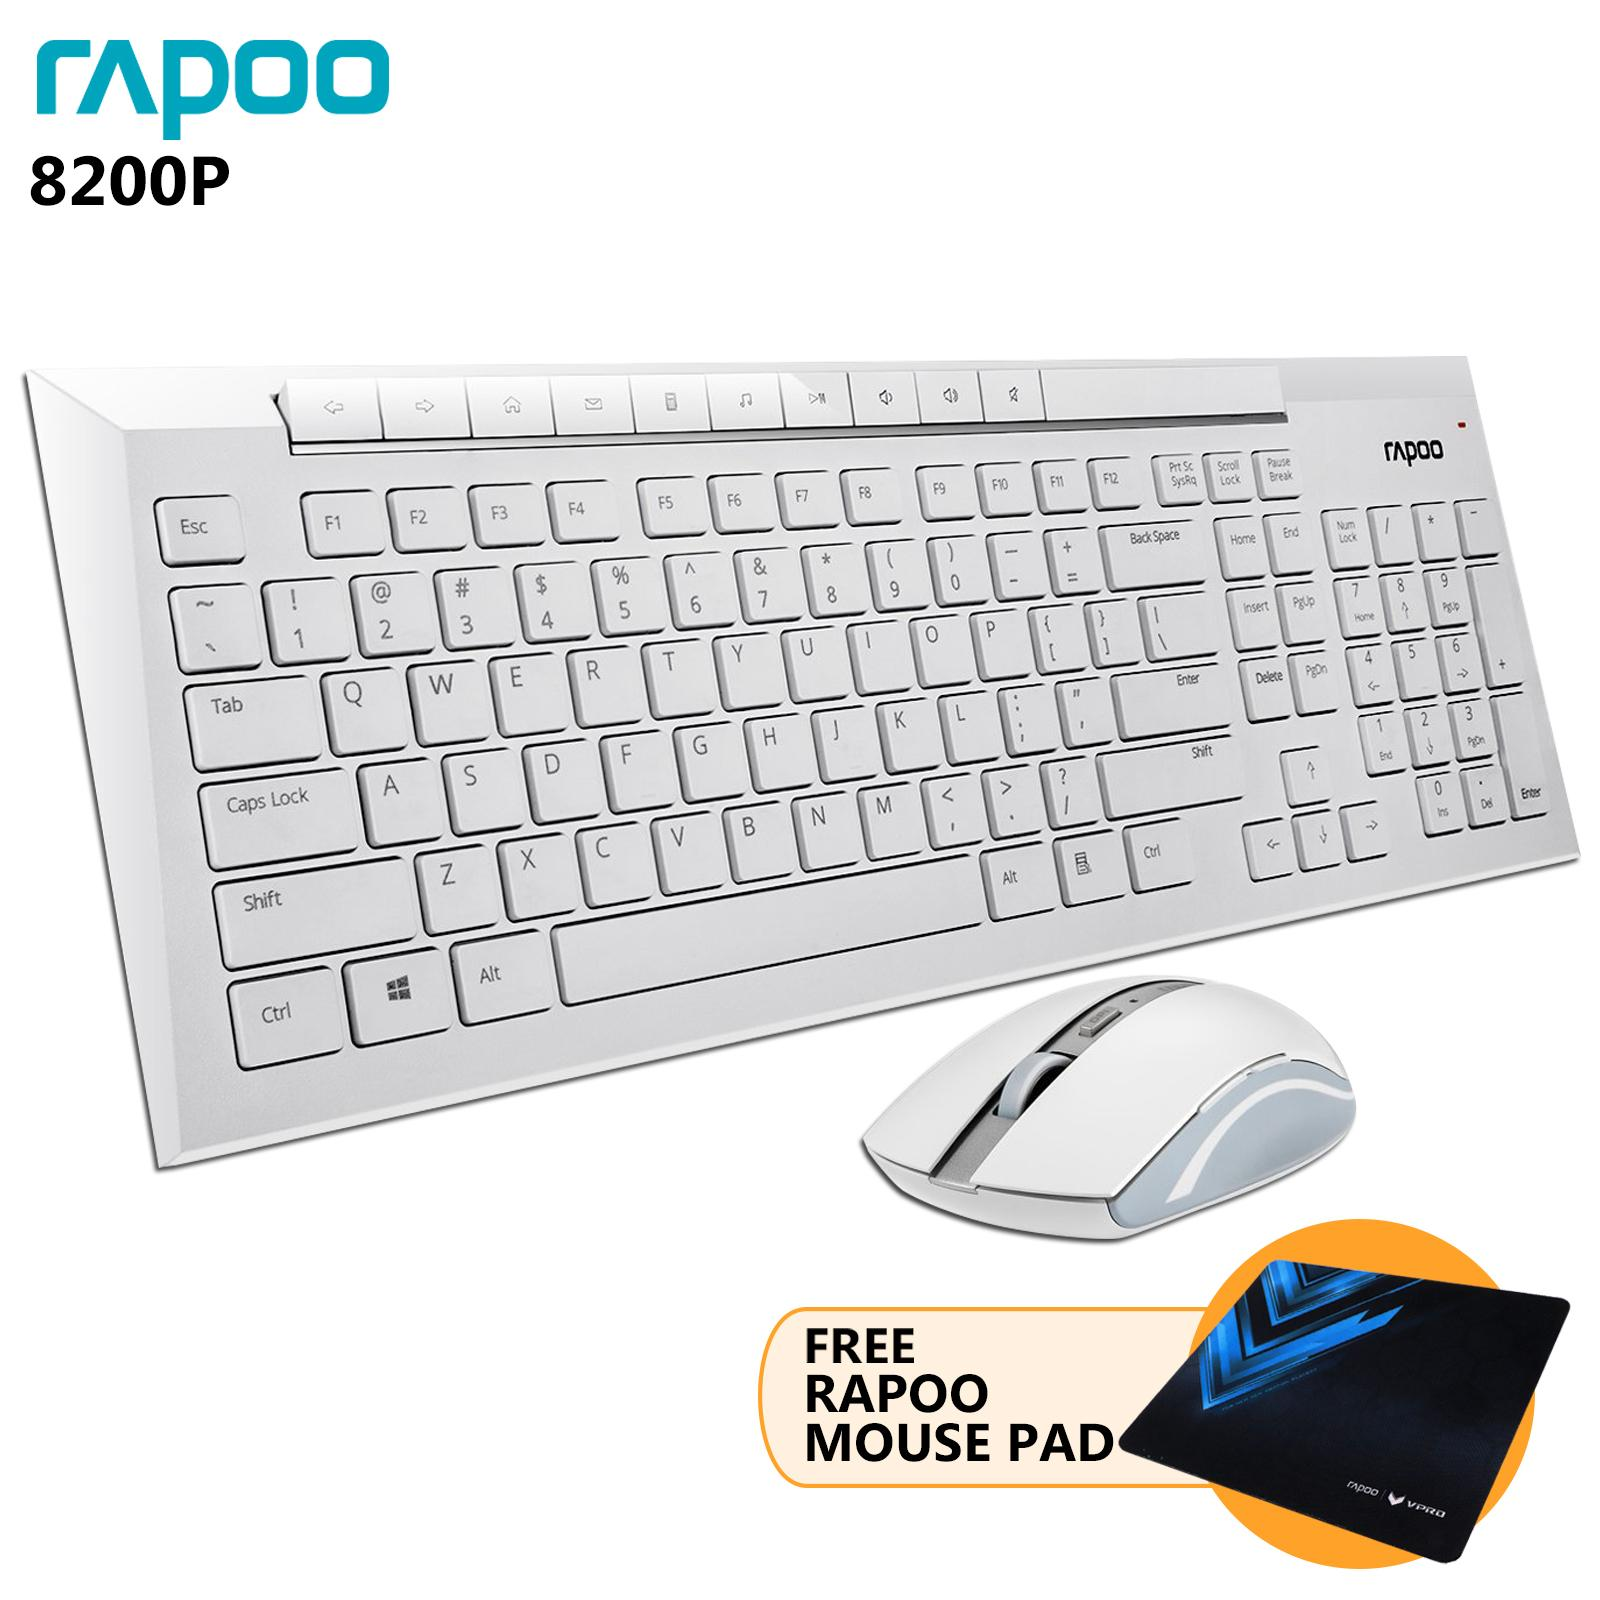 ed4cabdc534 RAPOO 8200P Multimedia 2.4G Wireless Keyboard and Mouse - Batteries  Included (WHITE) Philippines